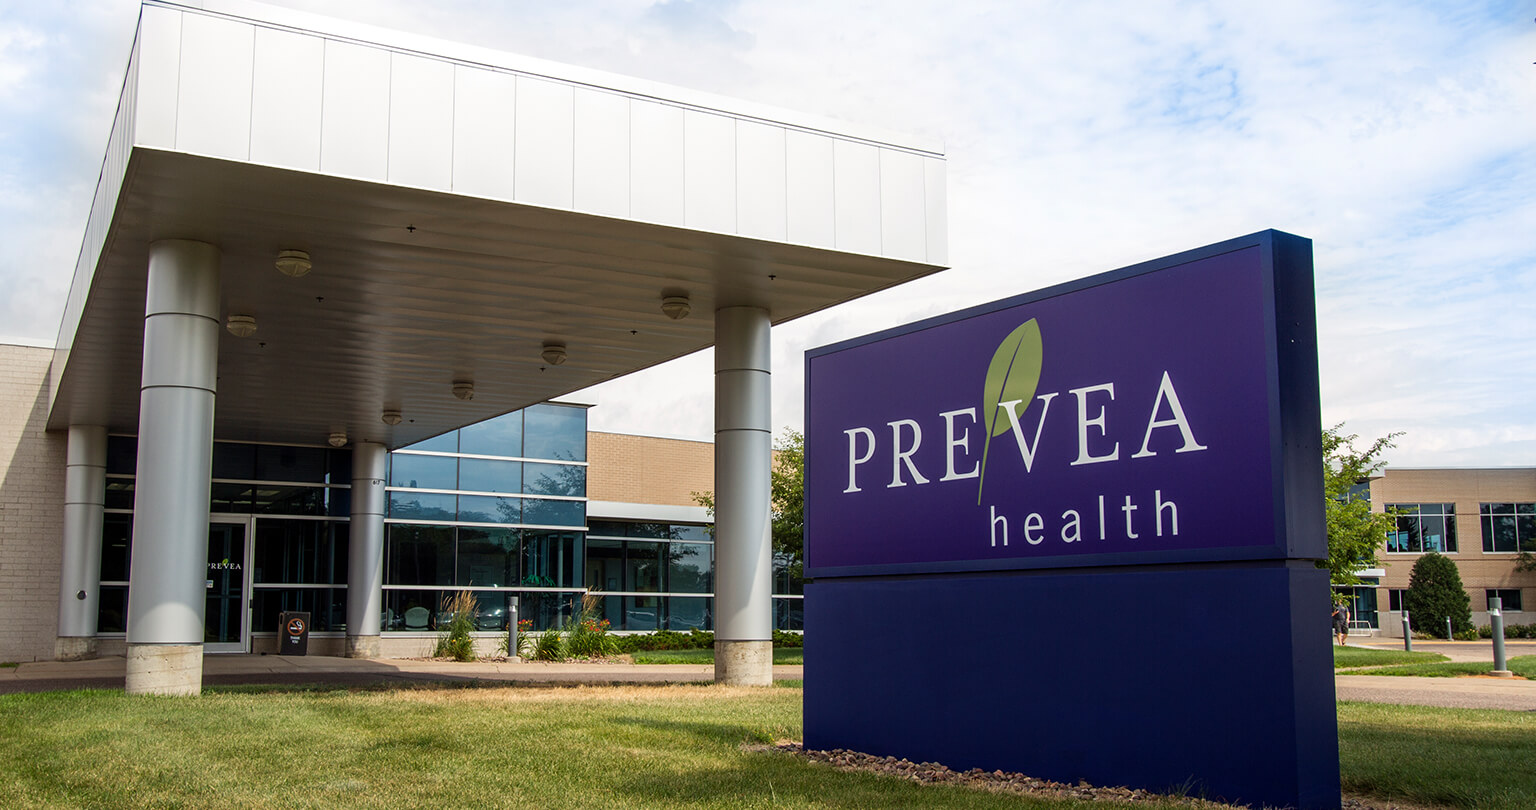 Exterior of Prevea Health Building